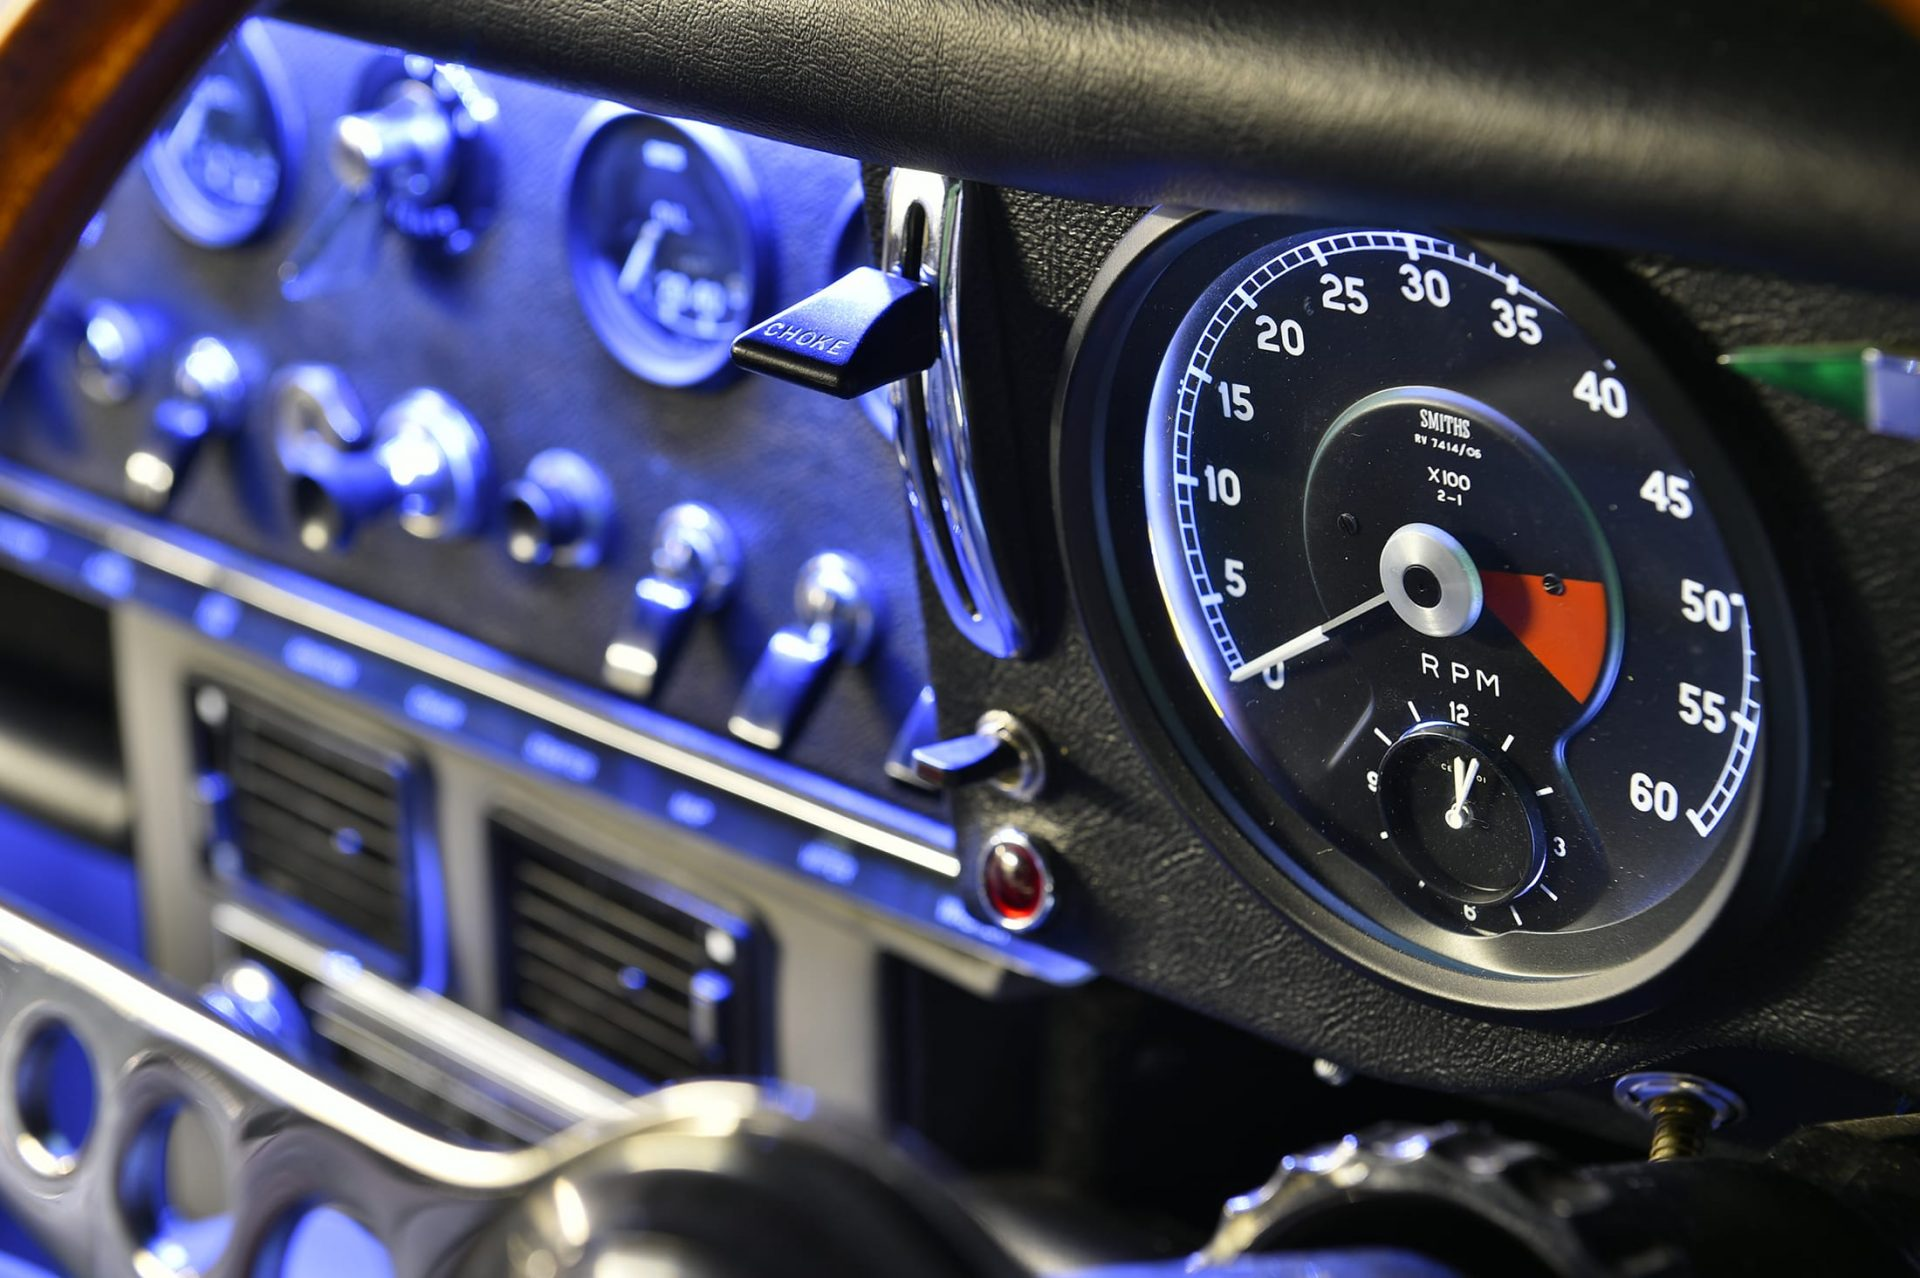 LED lighting on dashboard and dials of Jaguar E Type